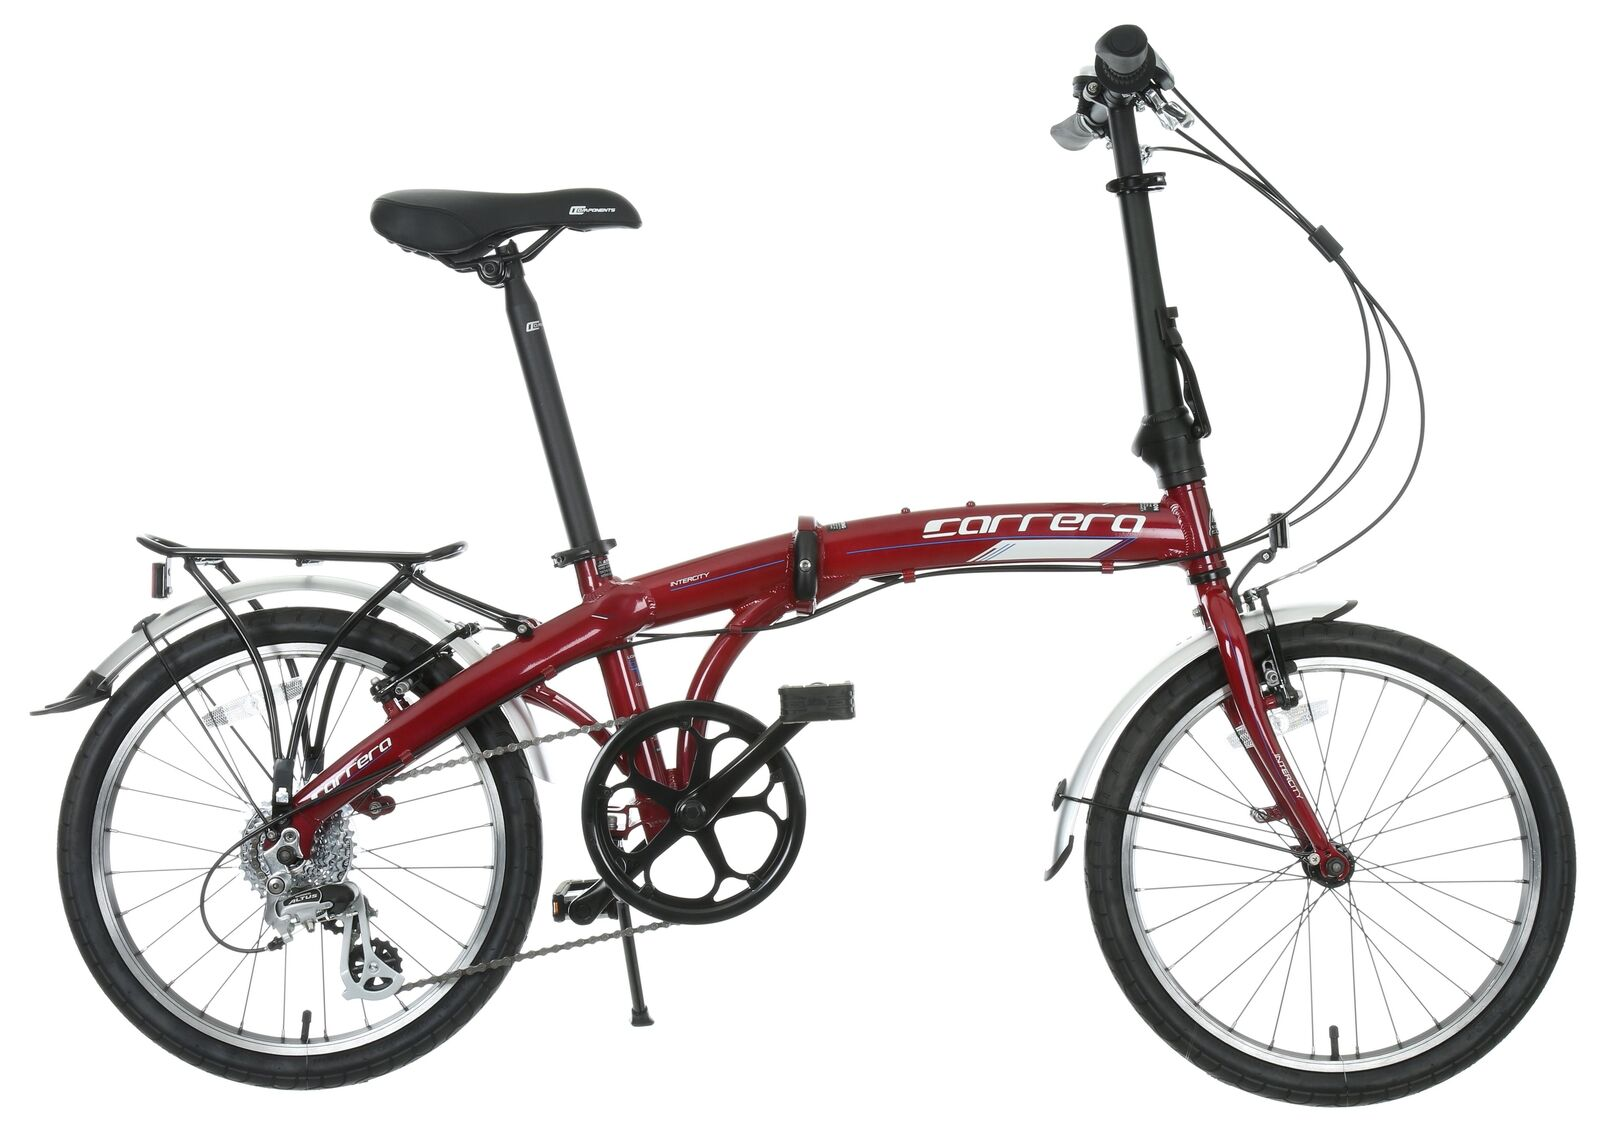 Carrera Intercity Unisex Adults Mens Womens Folding Bike Red Alloy Frame 8 Speed